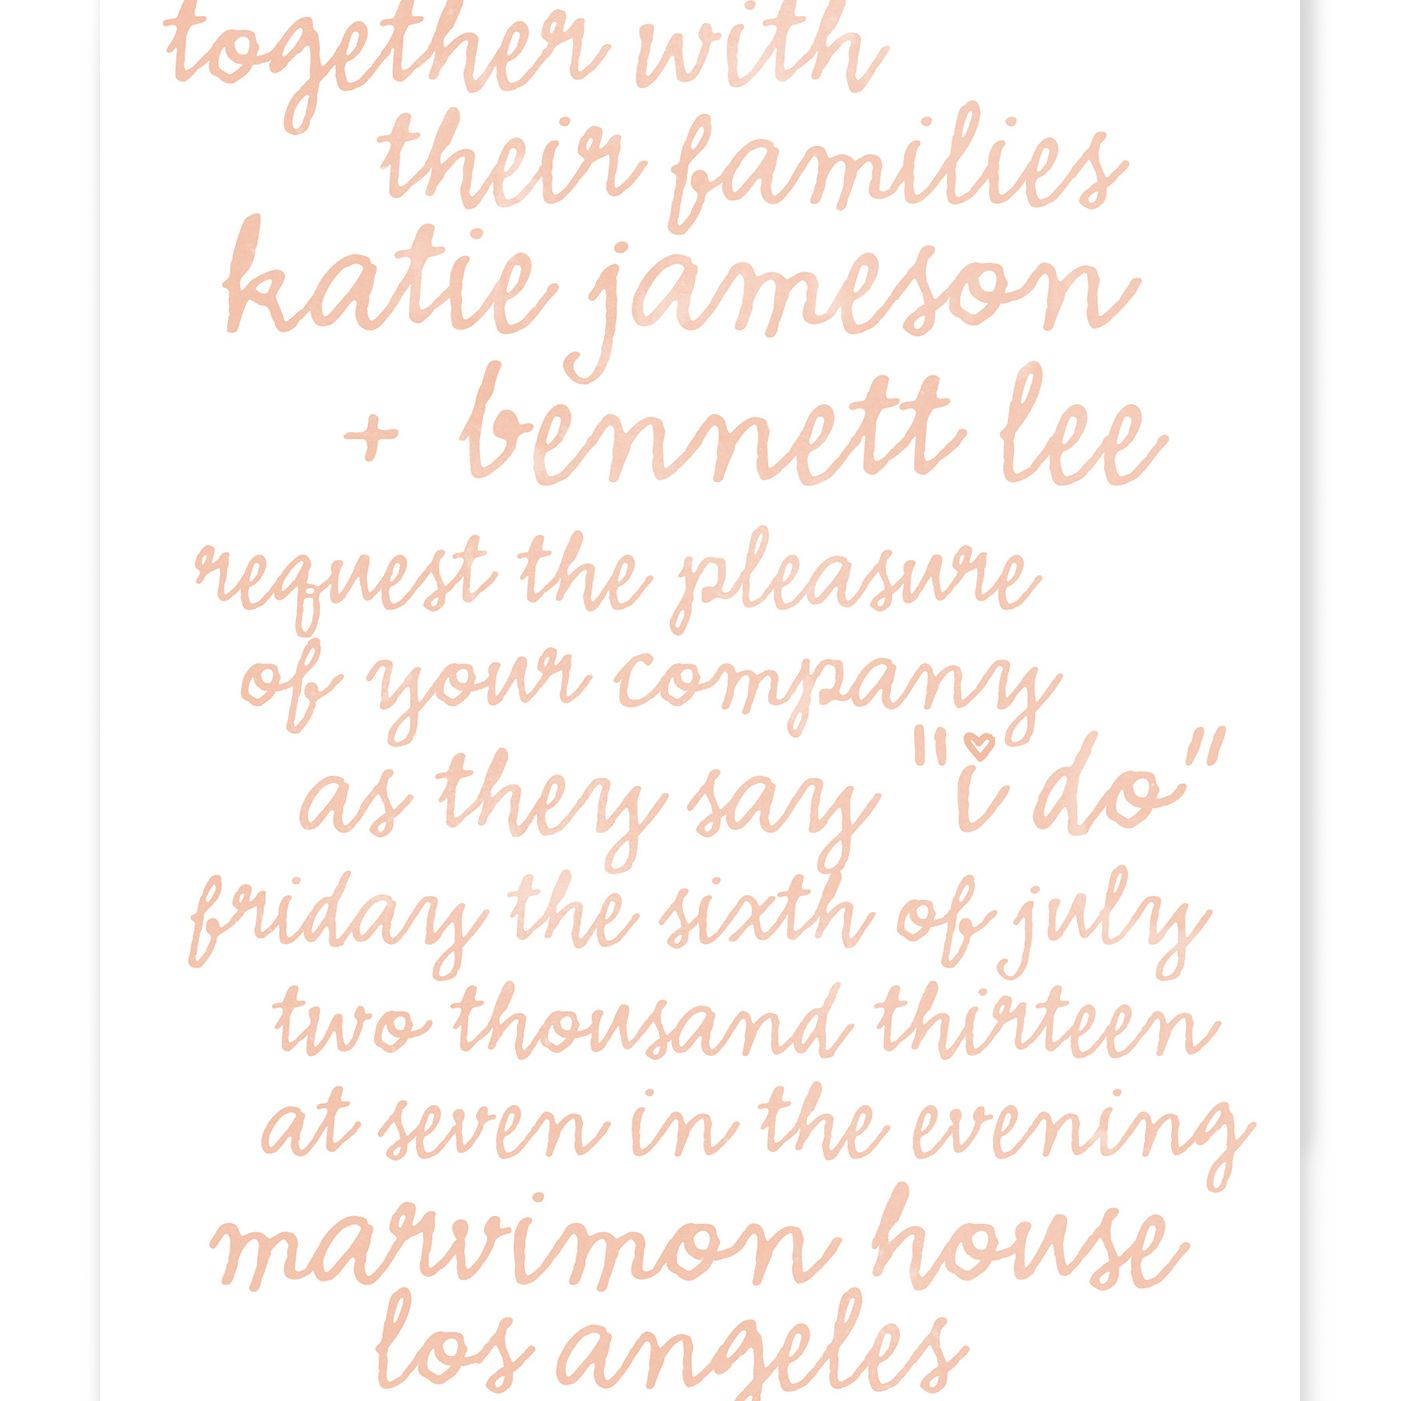 Print Wedding Invitations At Home: How To Print Your Own Wedding Invitations: 14 Things To Know